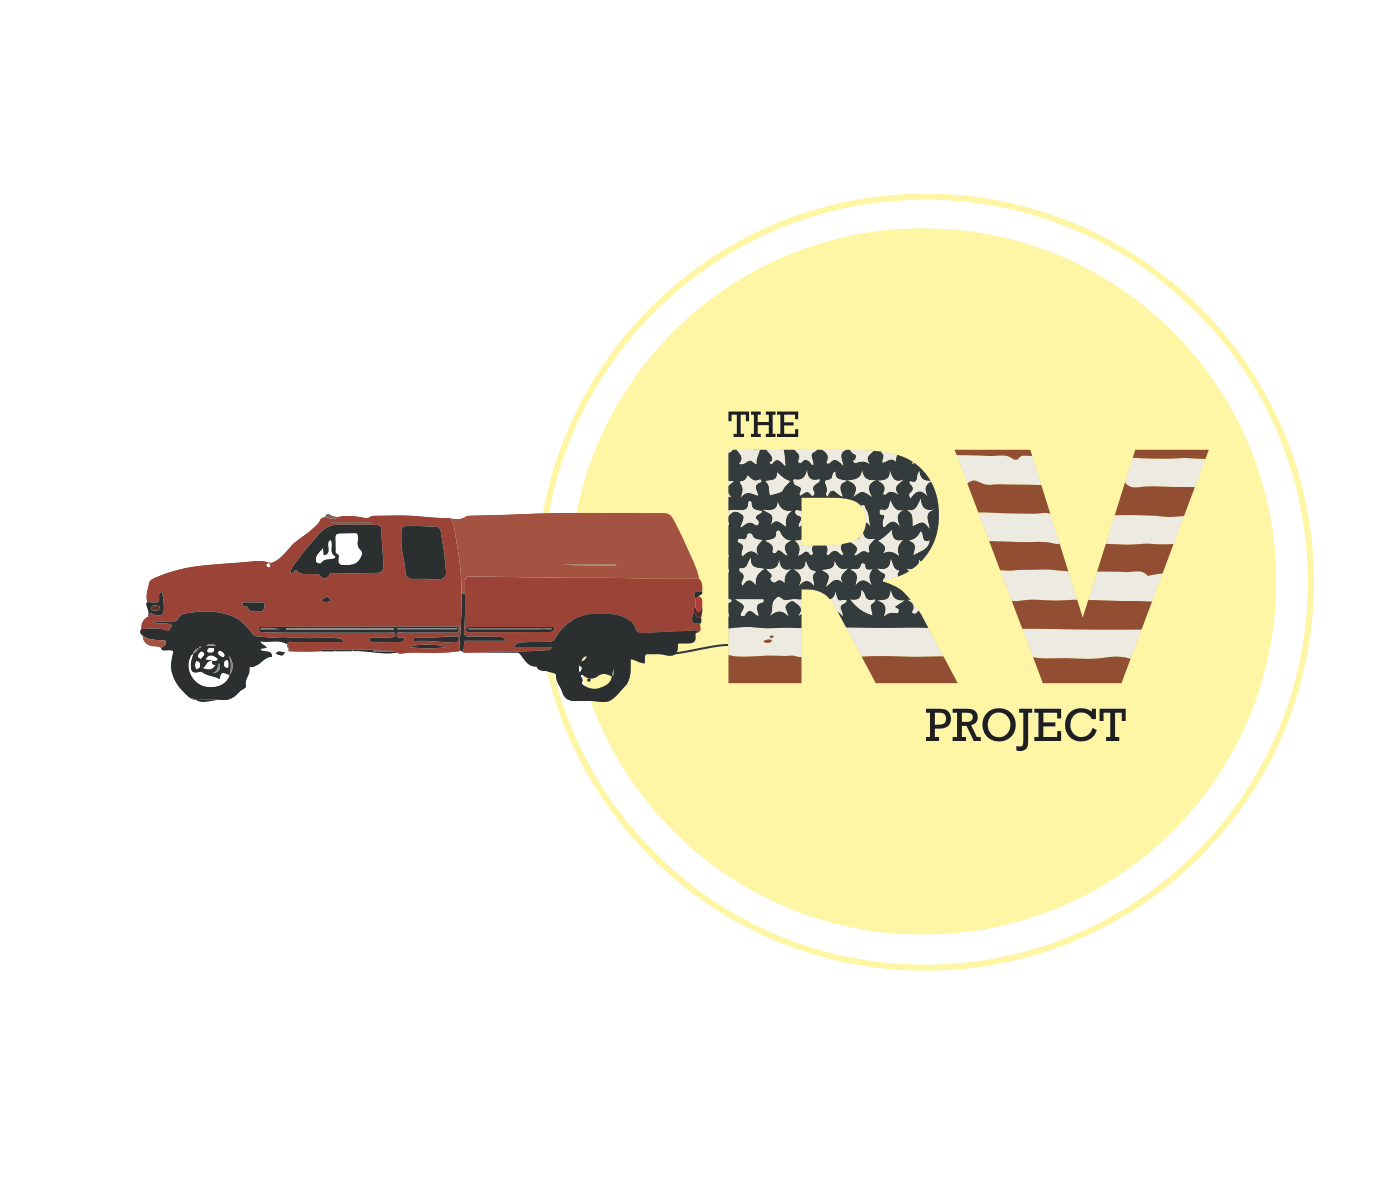 The RV Project